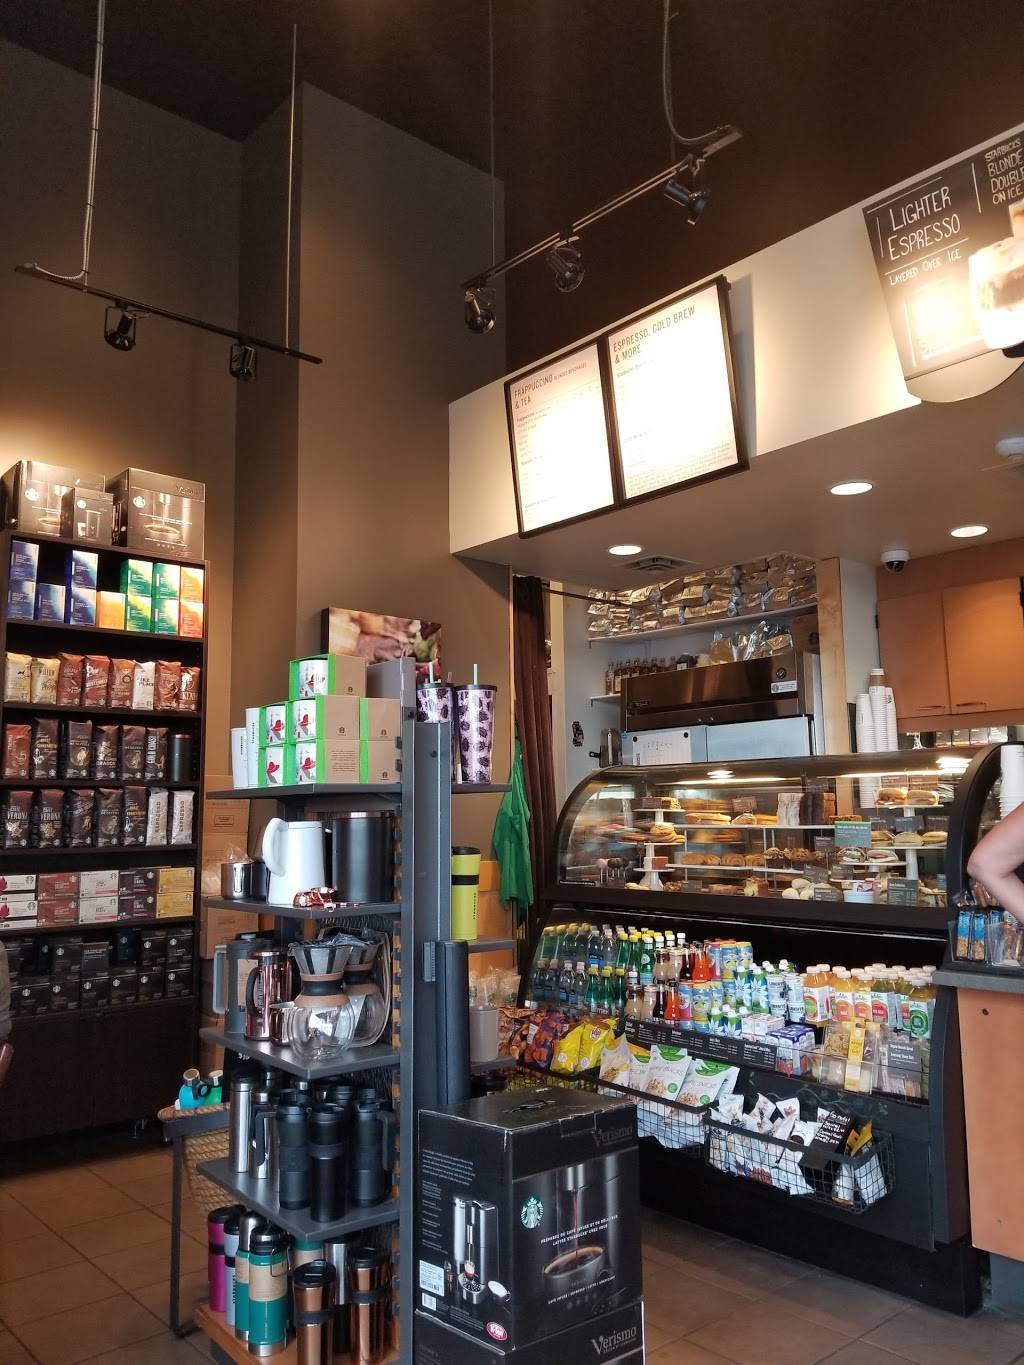 Starbucks - cafe  | Photo 2 of 8 | Address: 194 Commercial Blvd, Tecumseh, ON N9K 1G5, Canada | Phone: (519) 735-5110